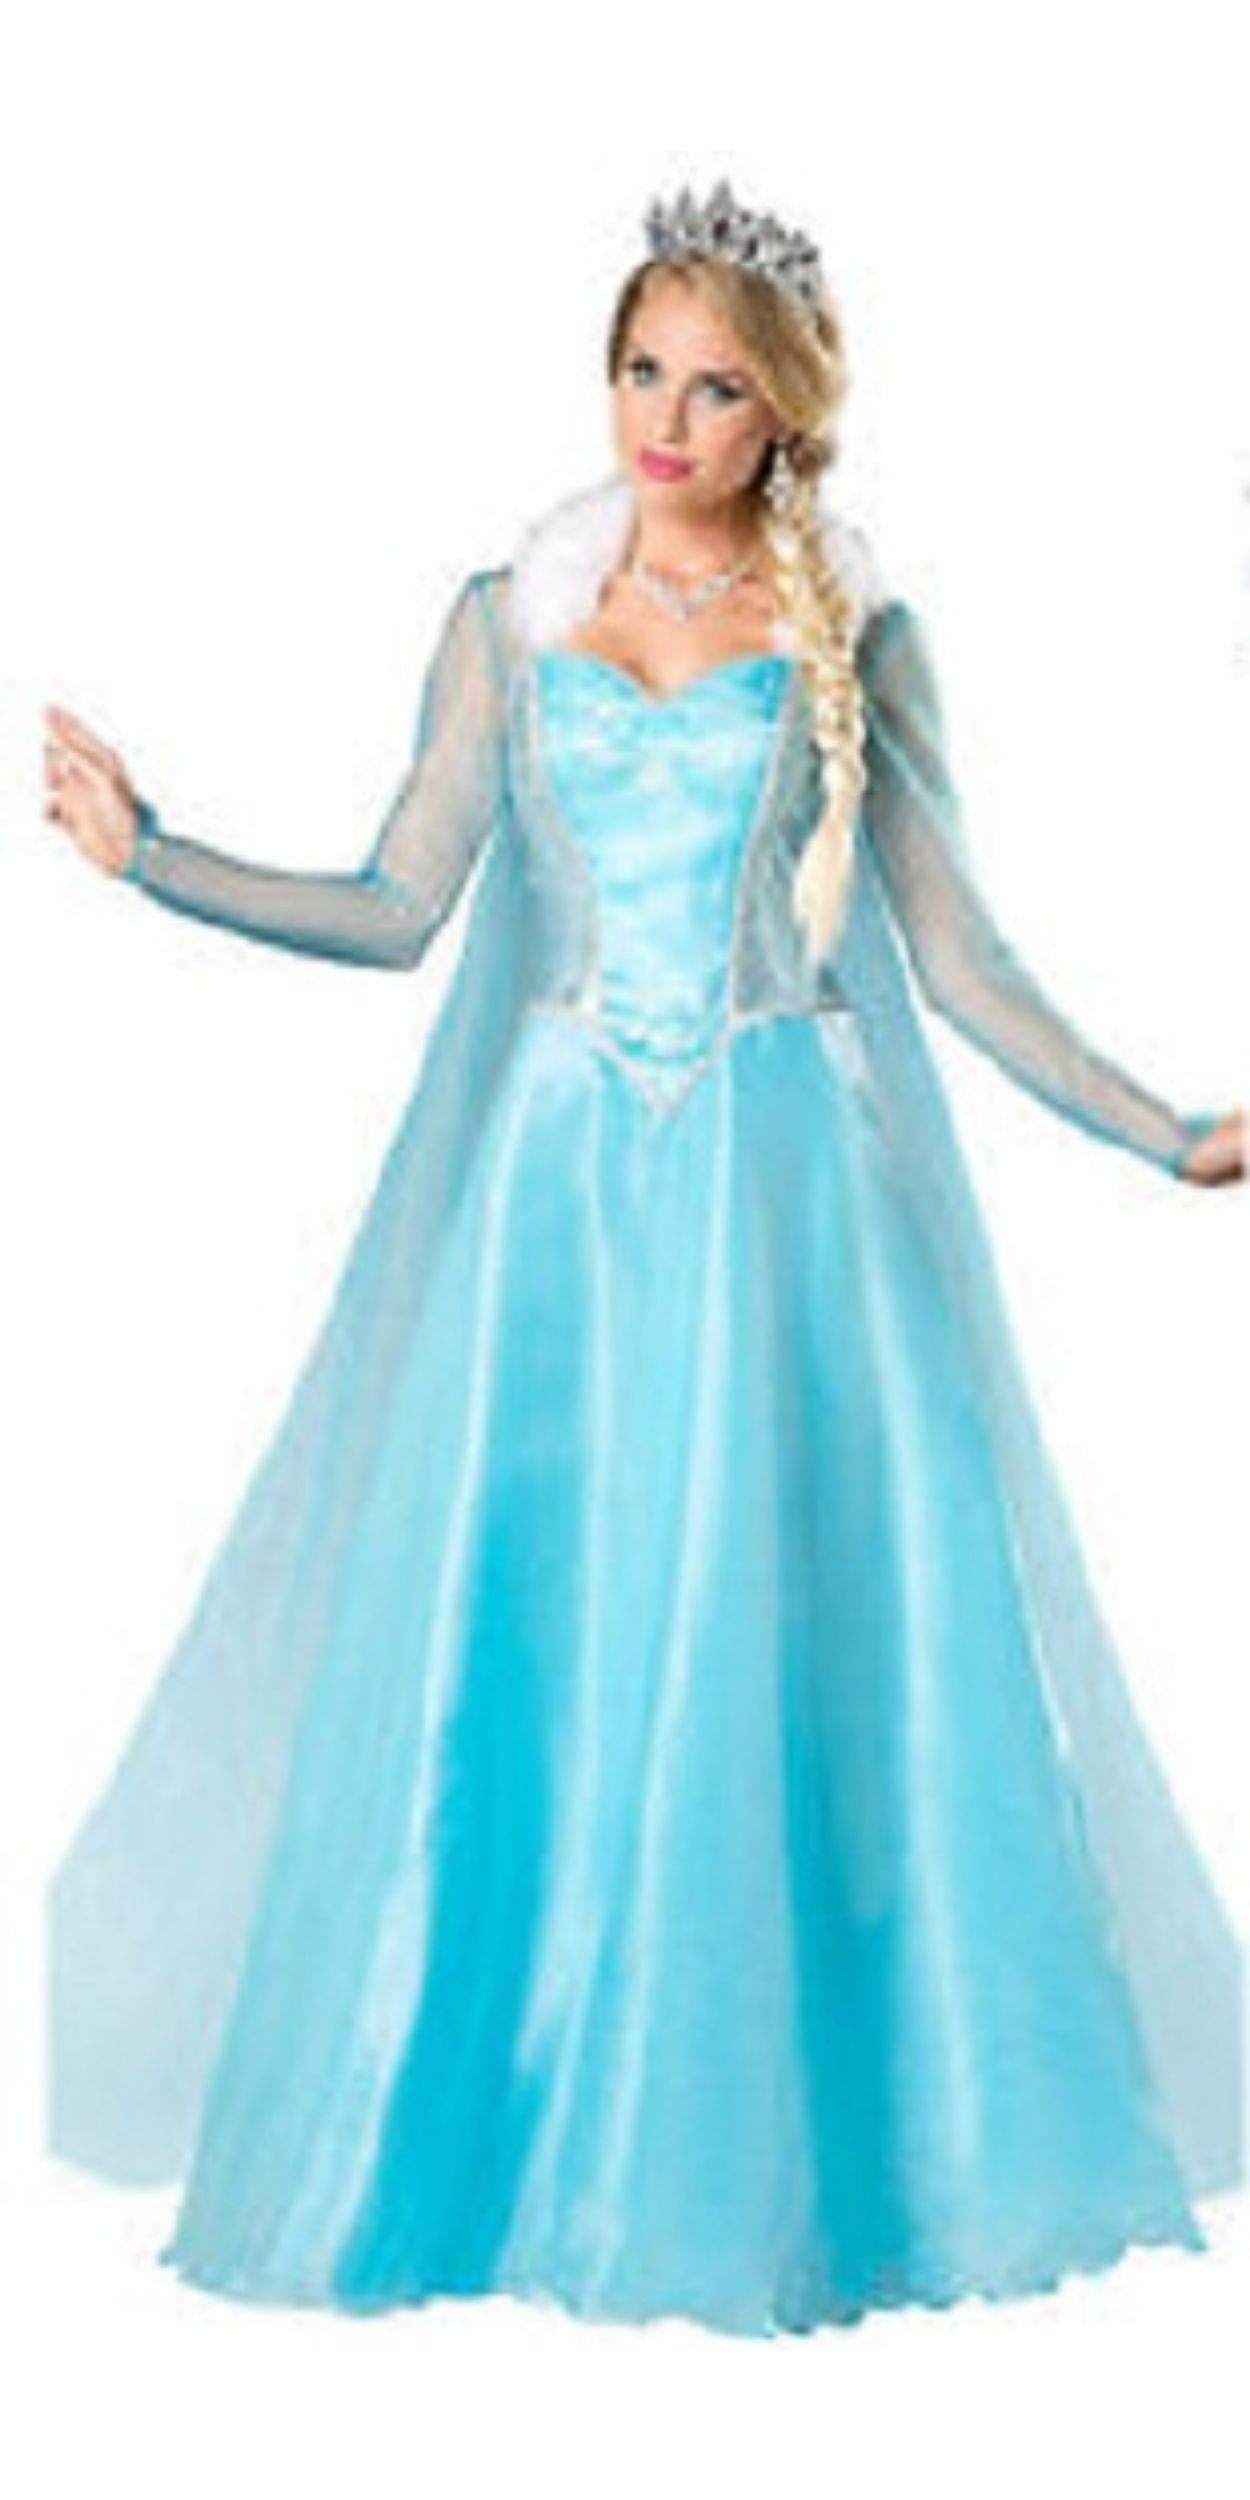 Woman in Elsa Party Costume